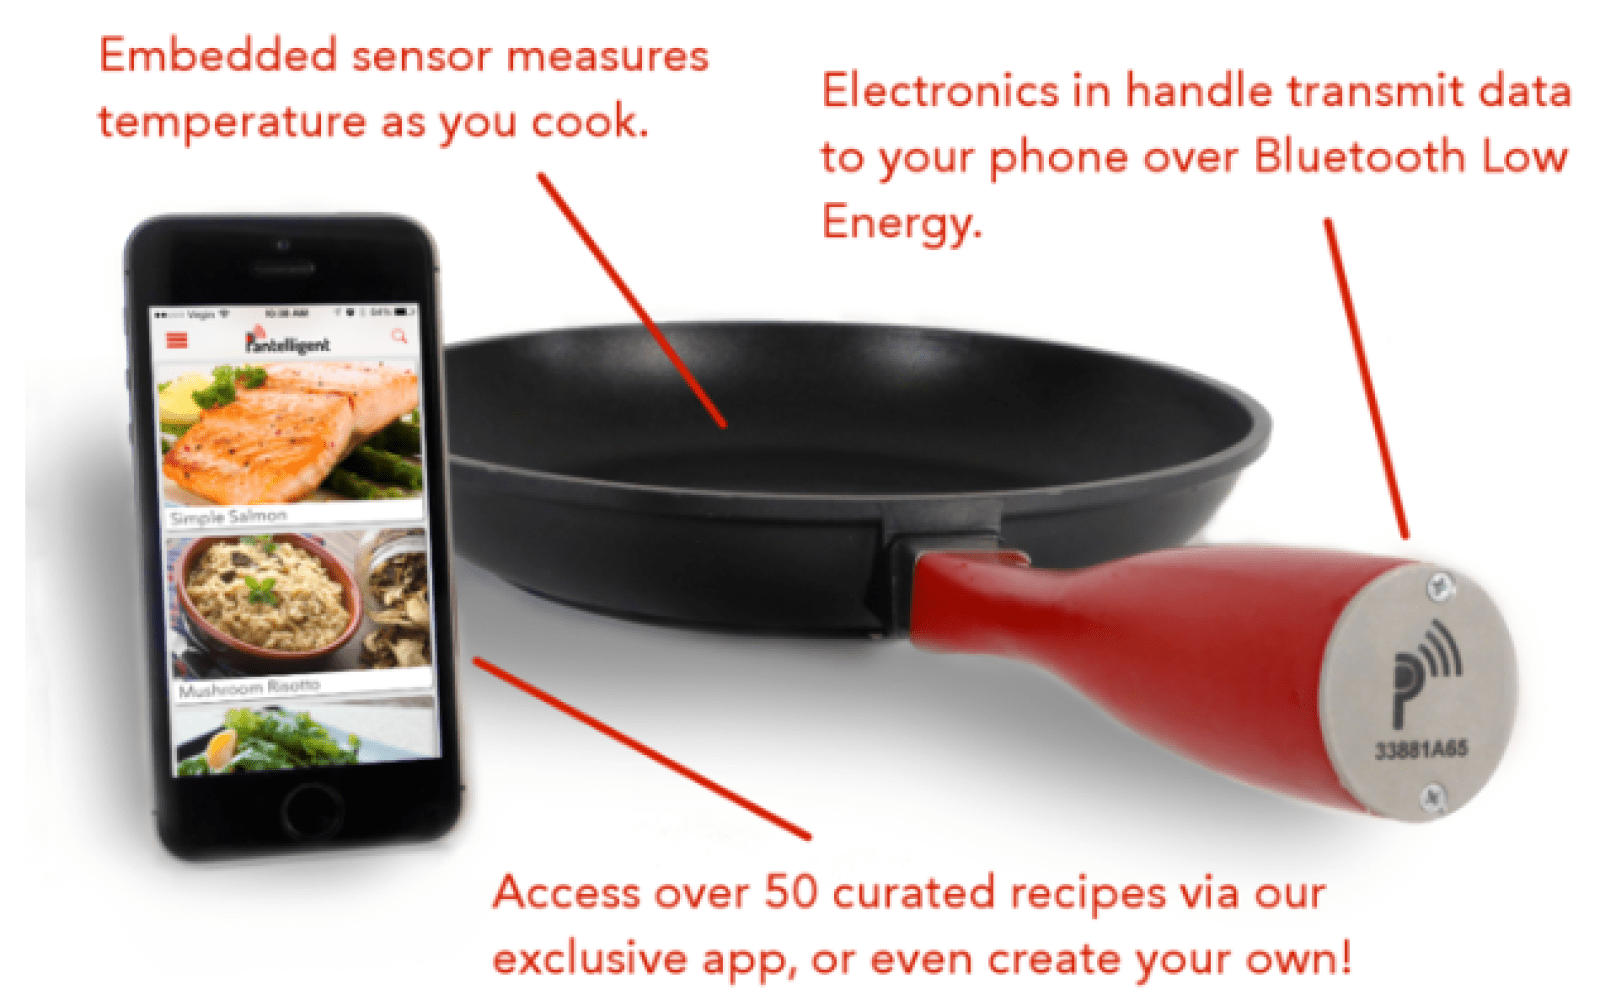 The latest contender for your automated kitchen: the $200 smart frying pan